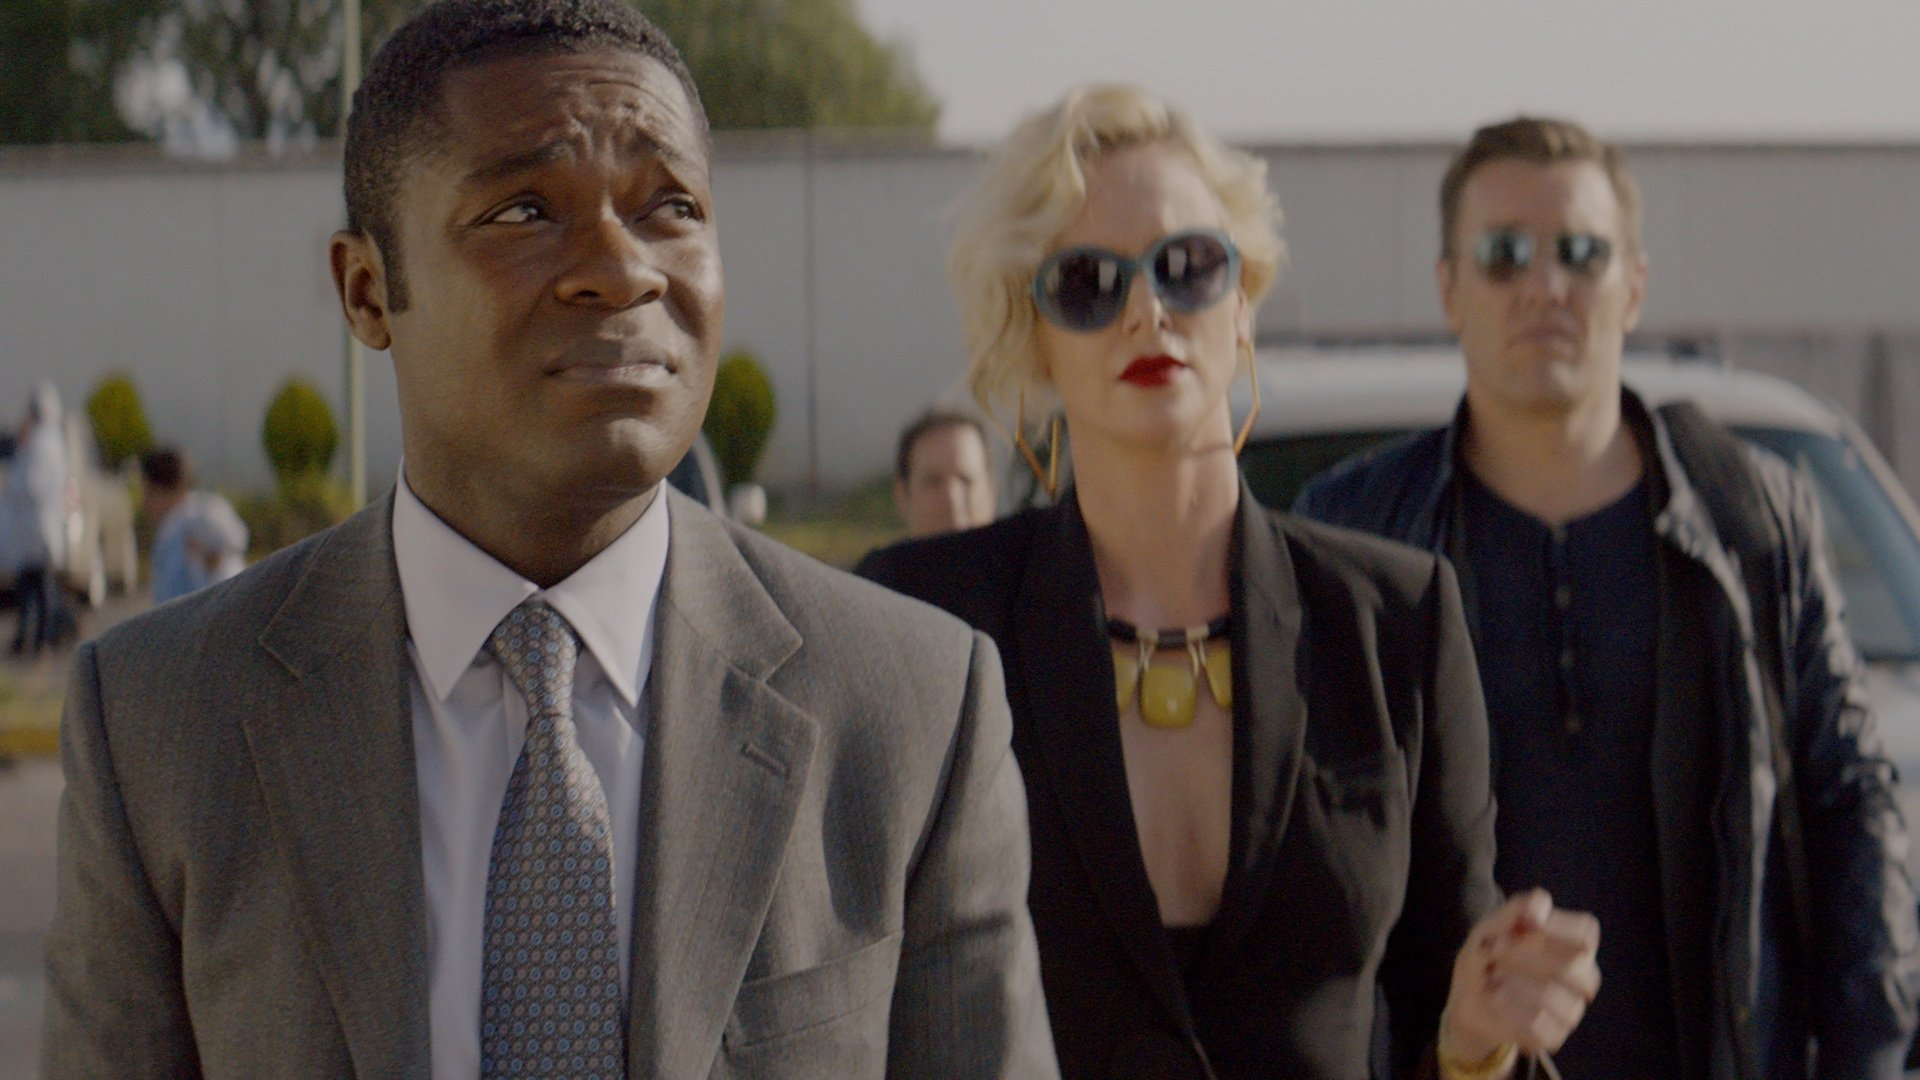 'Gringo-Backdrop' from the web at 'http://tylermovies.com/wp-content/uploads/2018/02/Gringo-Backdrop.jpg'